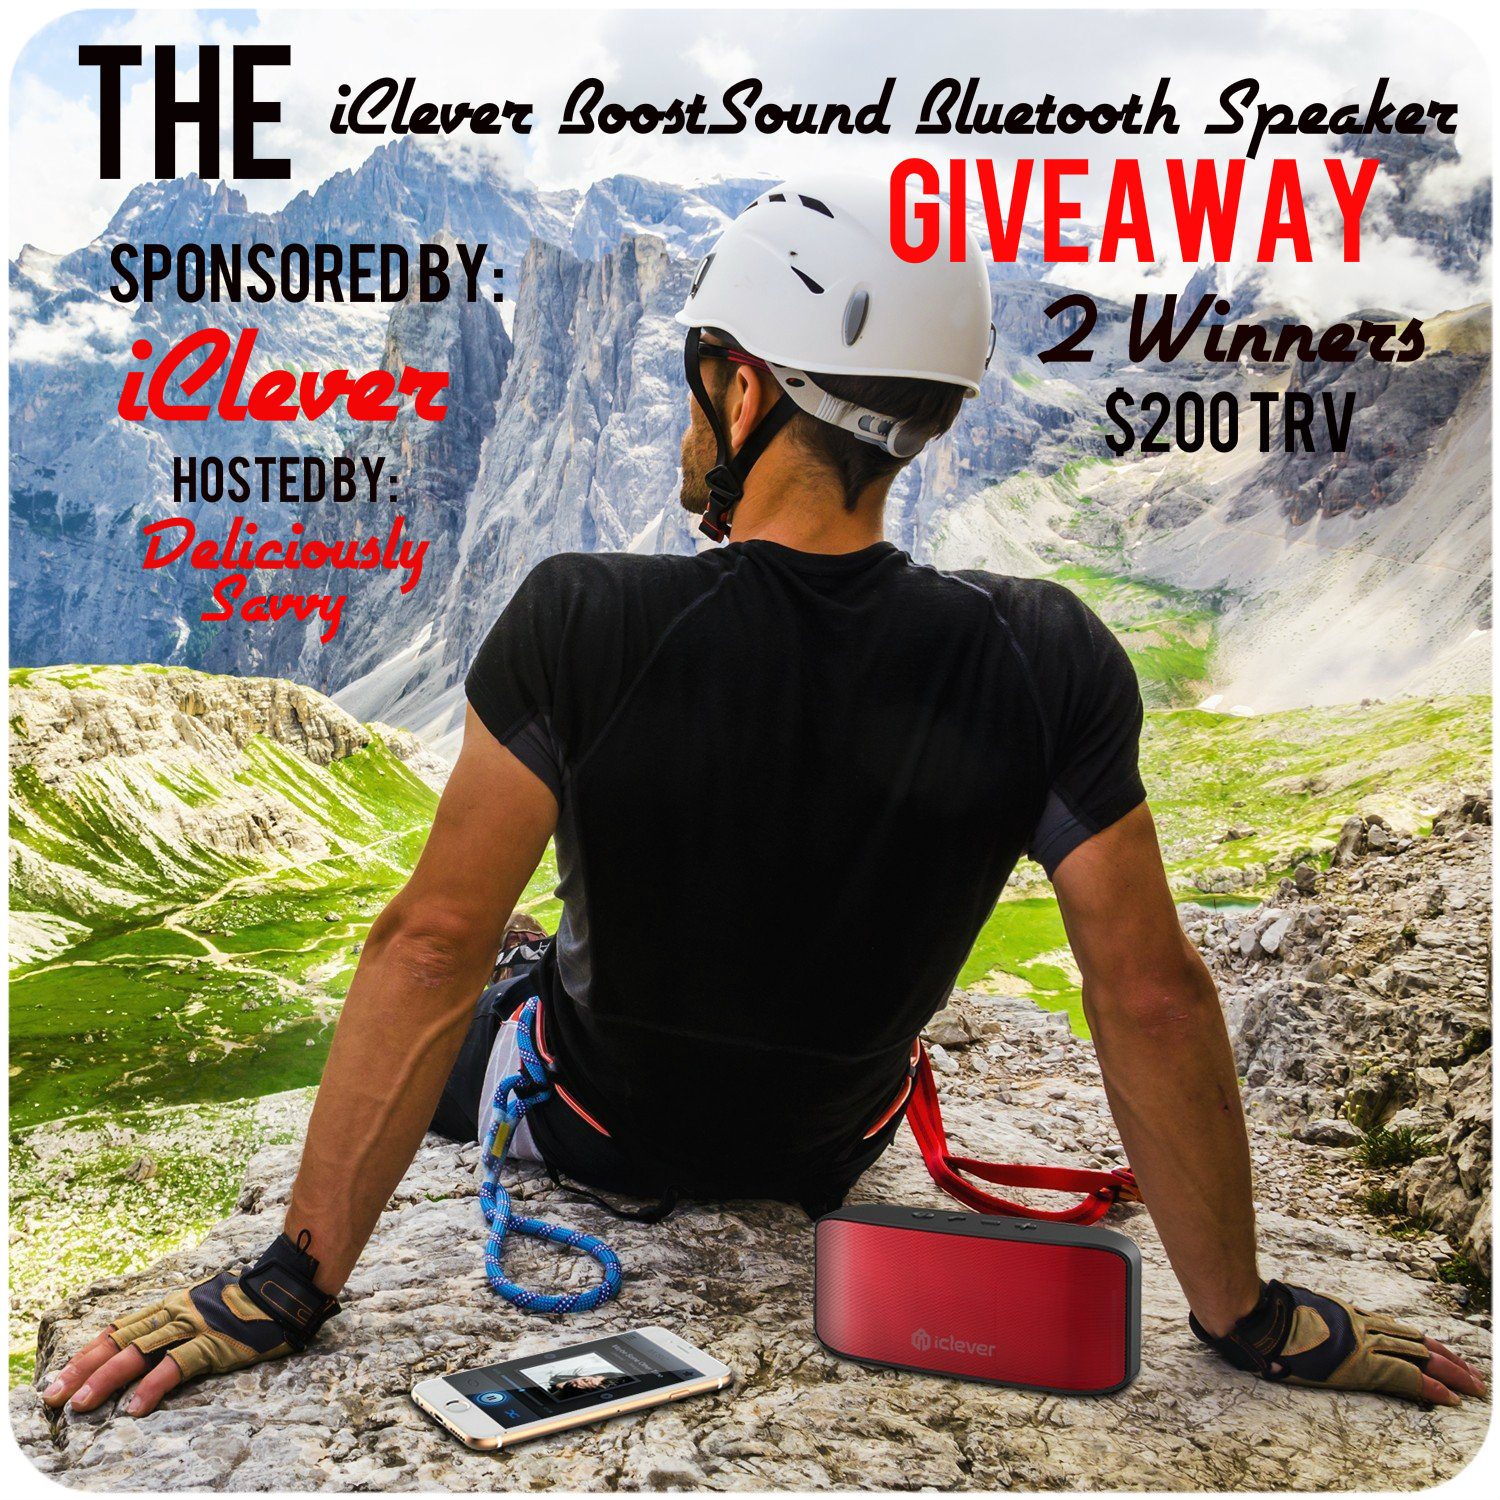 iClever BoostSound Bluetooth Speaker Giveaway